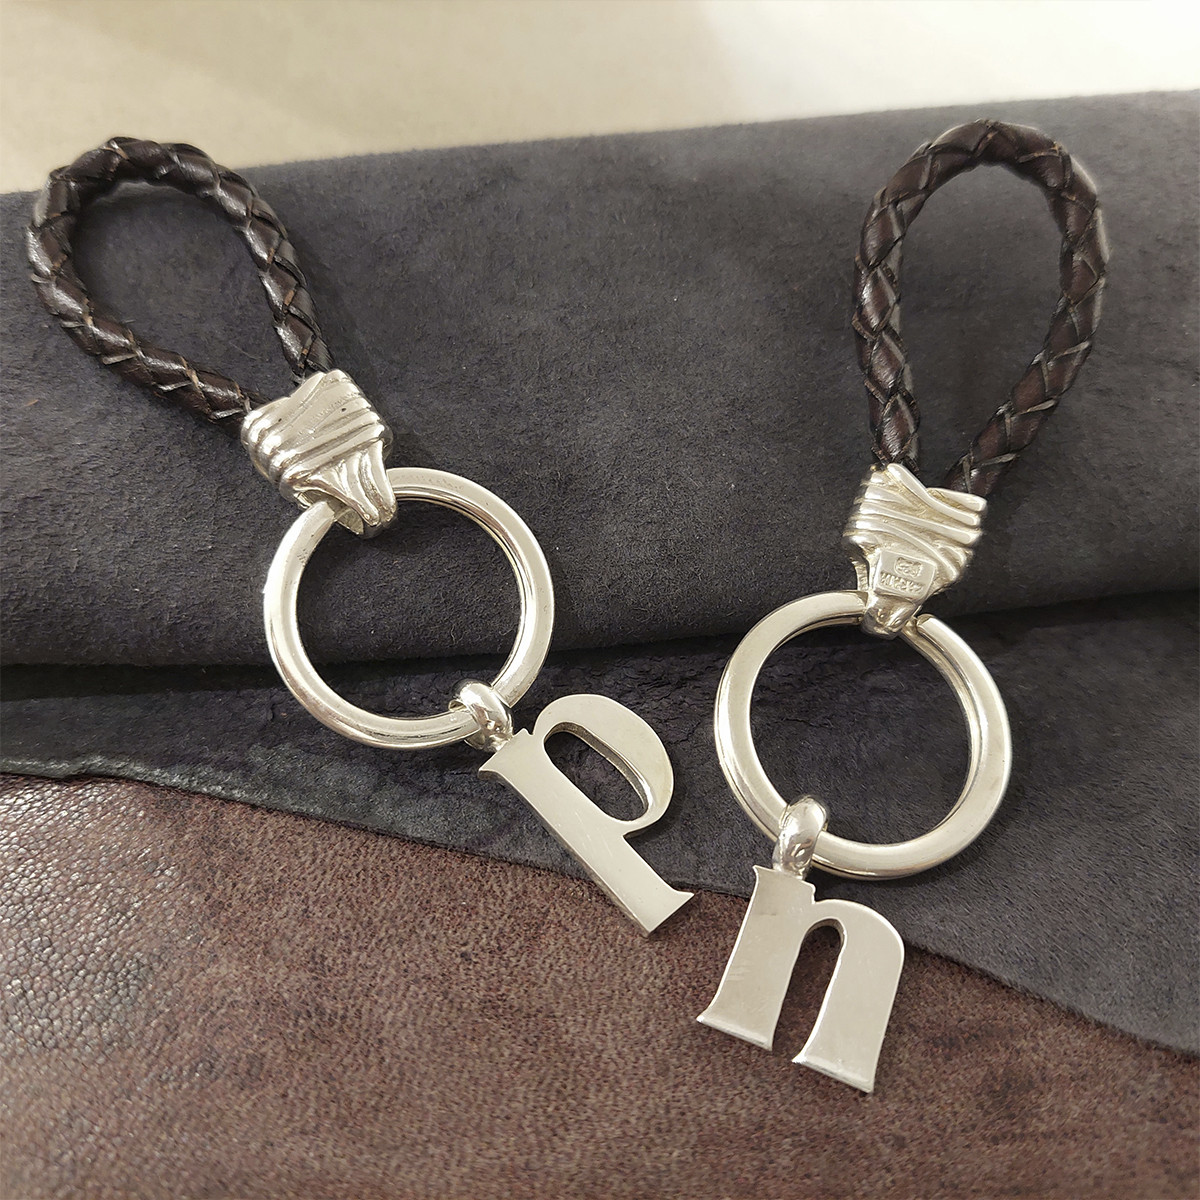 SILVER AND LEATHER KEYCHAIN